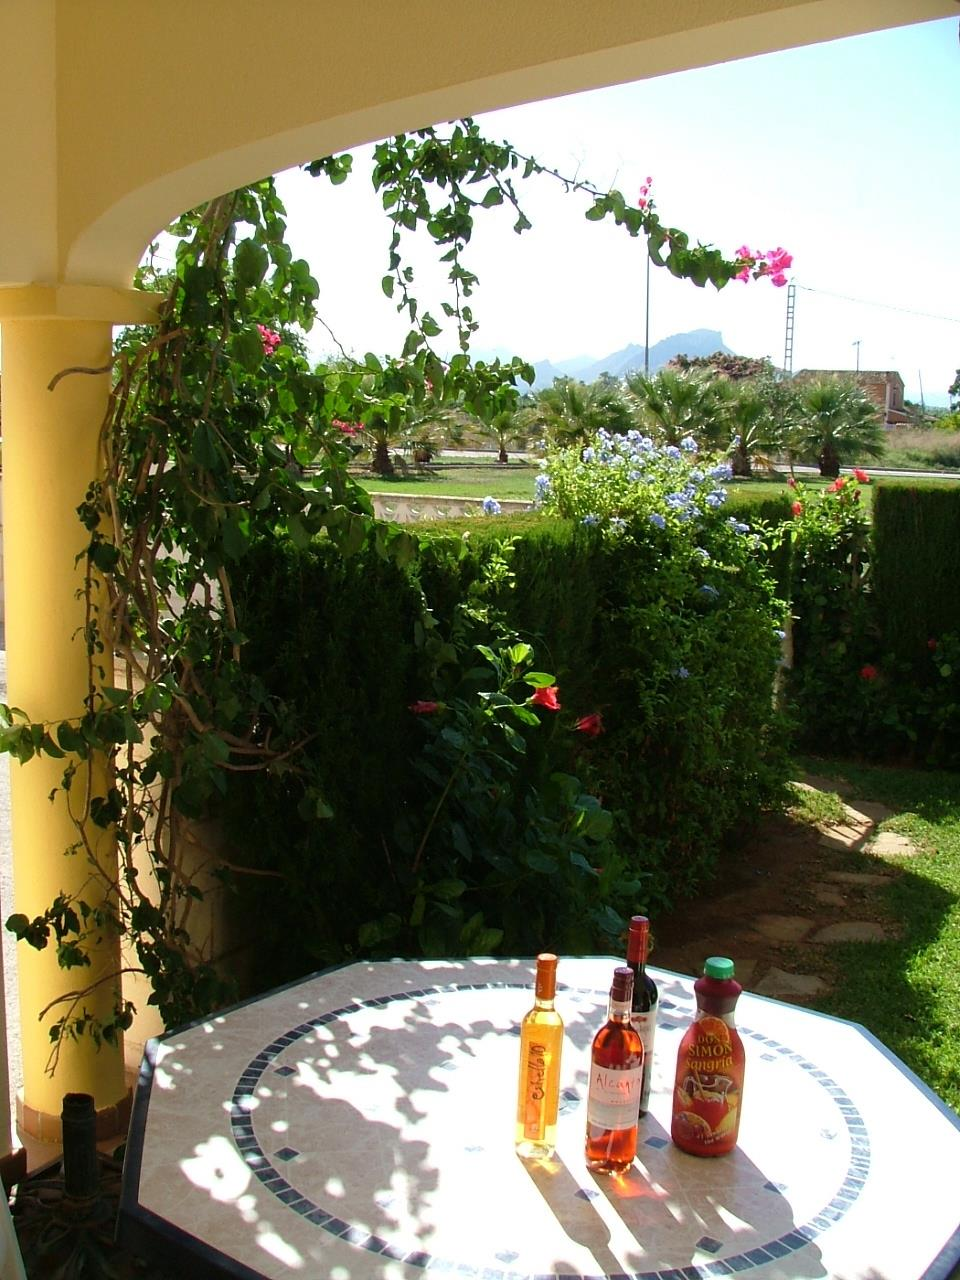 View of garden and some refreshments!